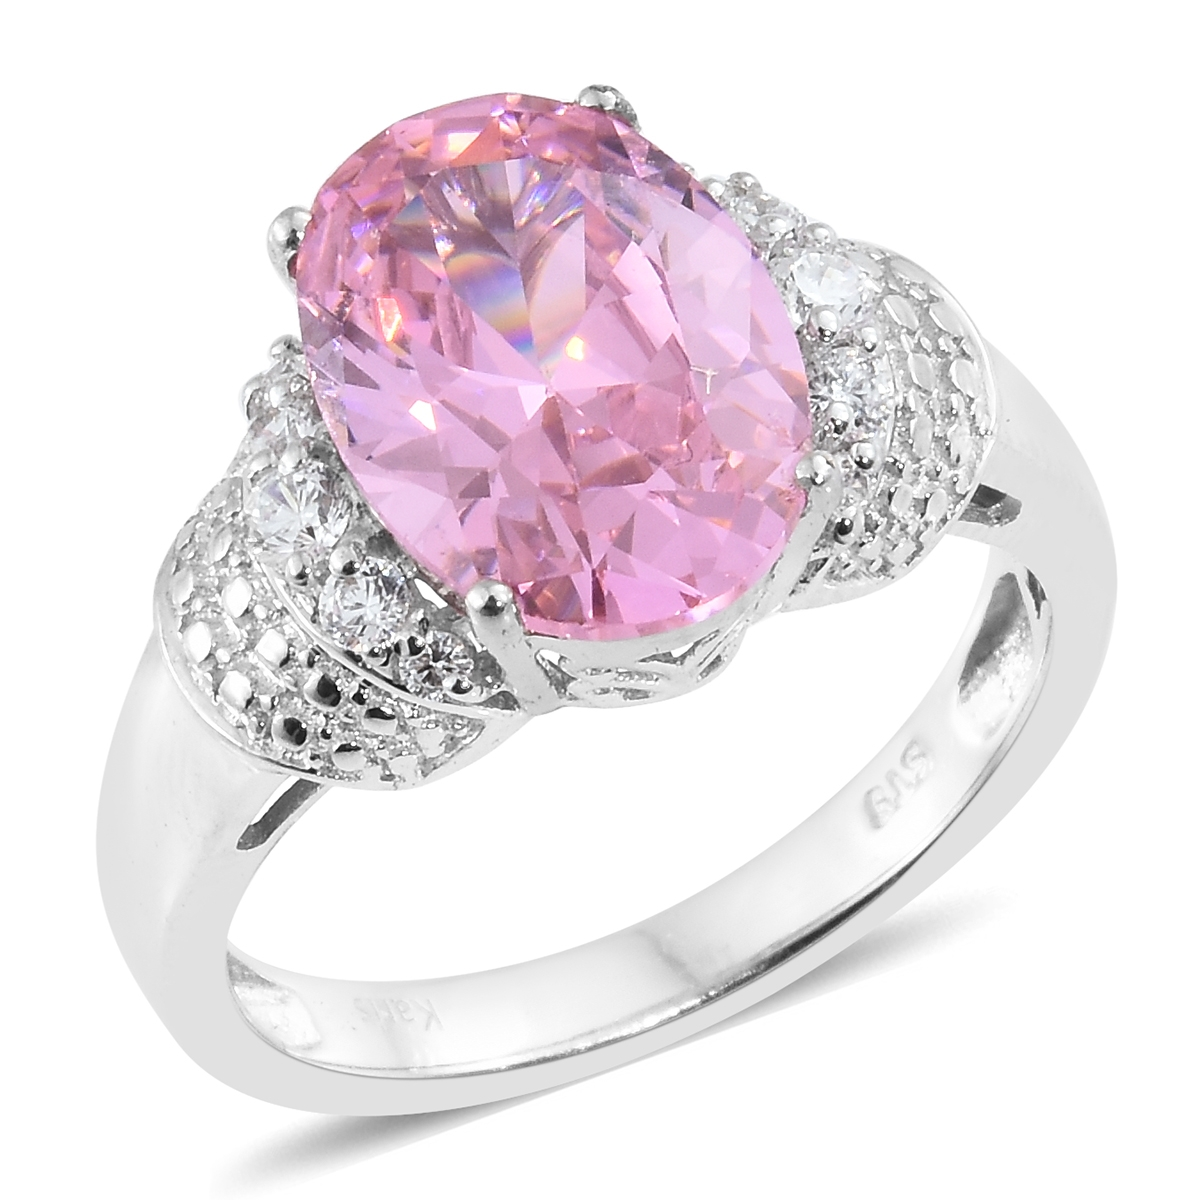 KARIS Collection - Simulated Pink Sapphire, Simulated Diamond ...